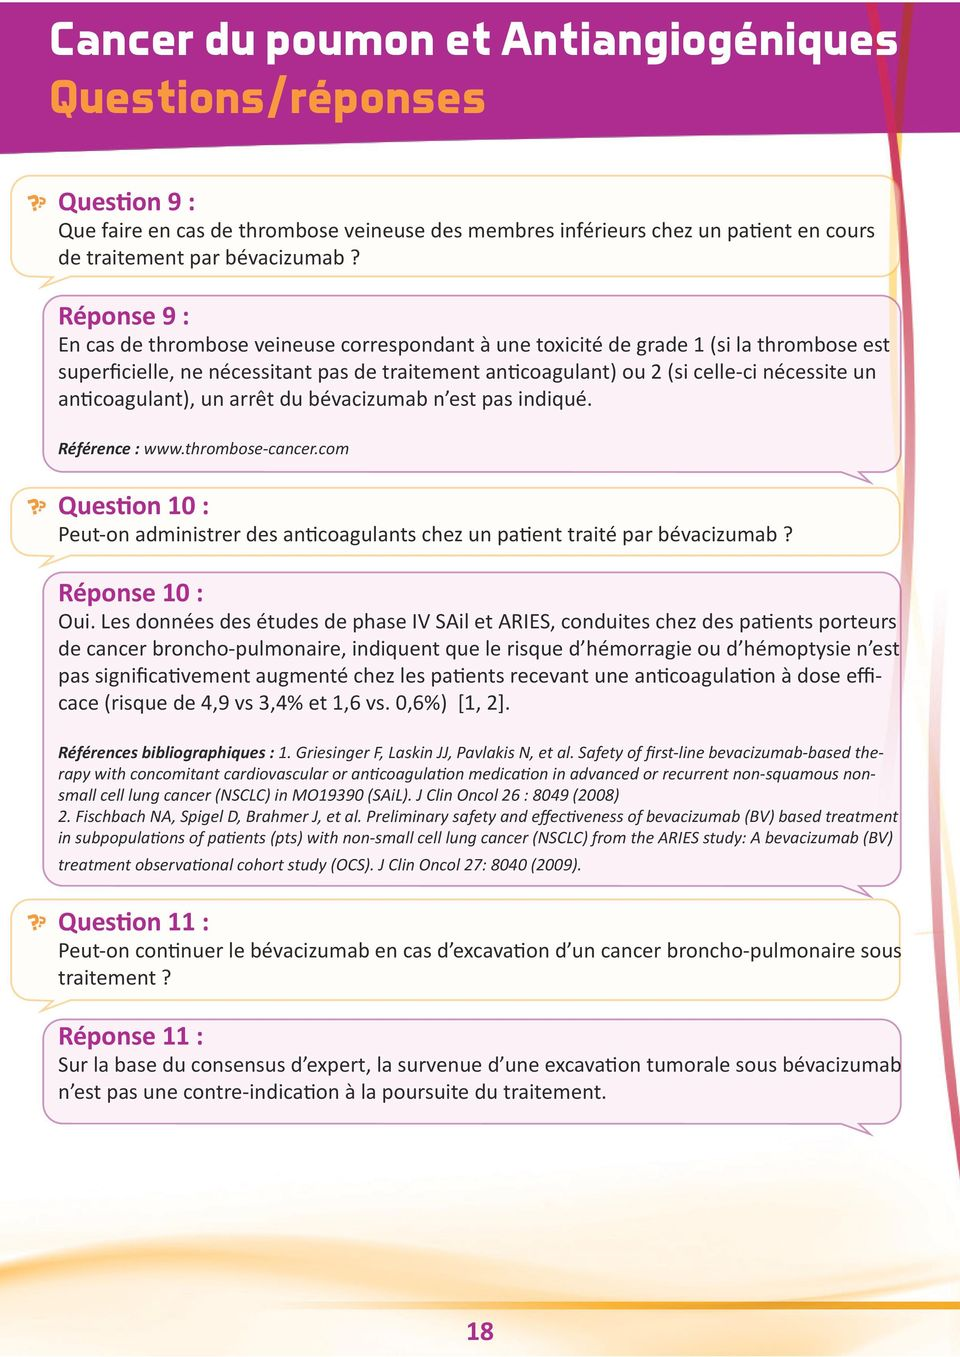 anticoagulant), un arrêt du bévacizumab n est pas indiqué. Référence : www.thrombose-cancer.com Question 10 : Peut-on administrer des anticoagulants chez un patient traité par bévacizumab?